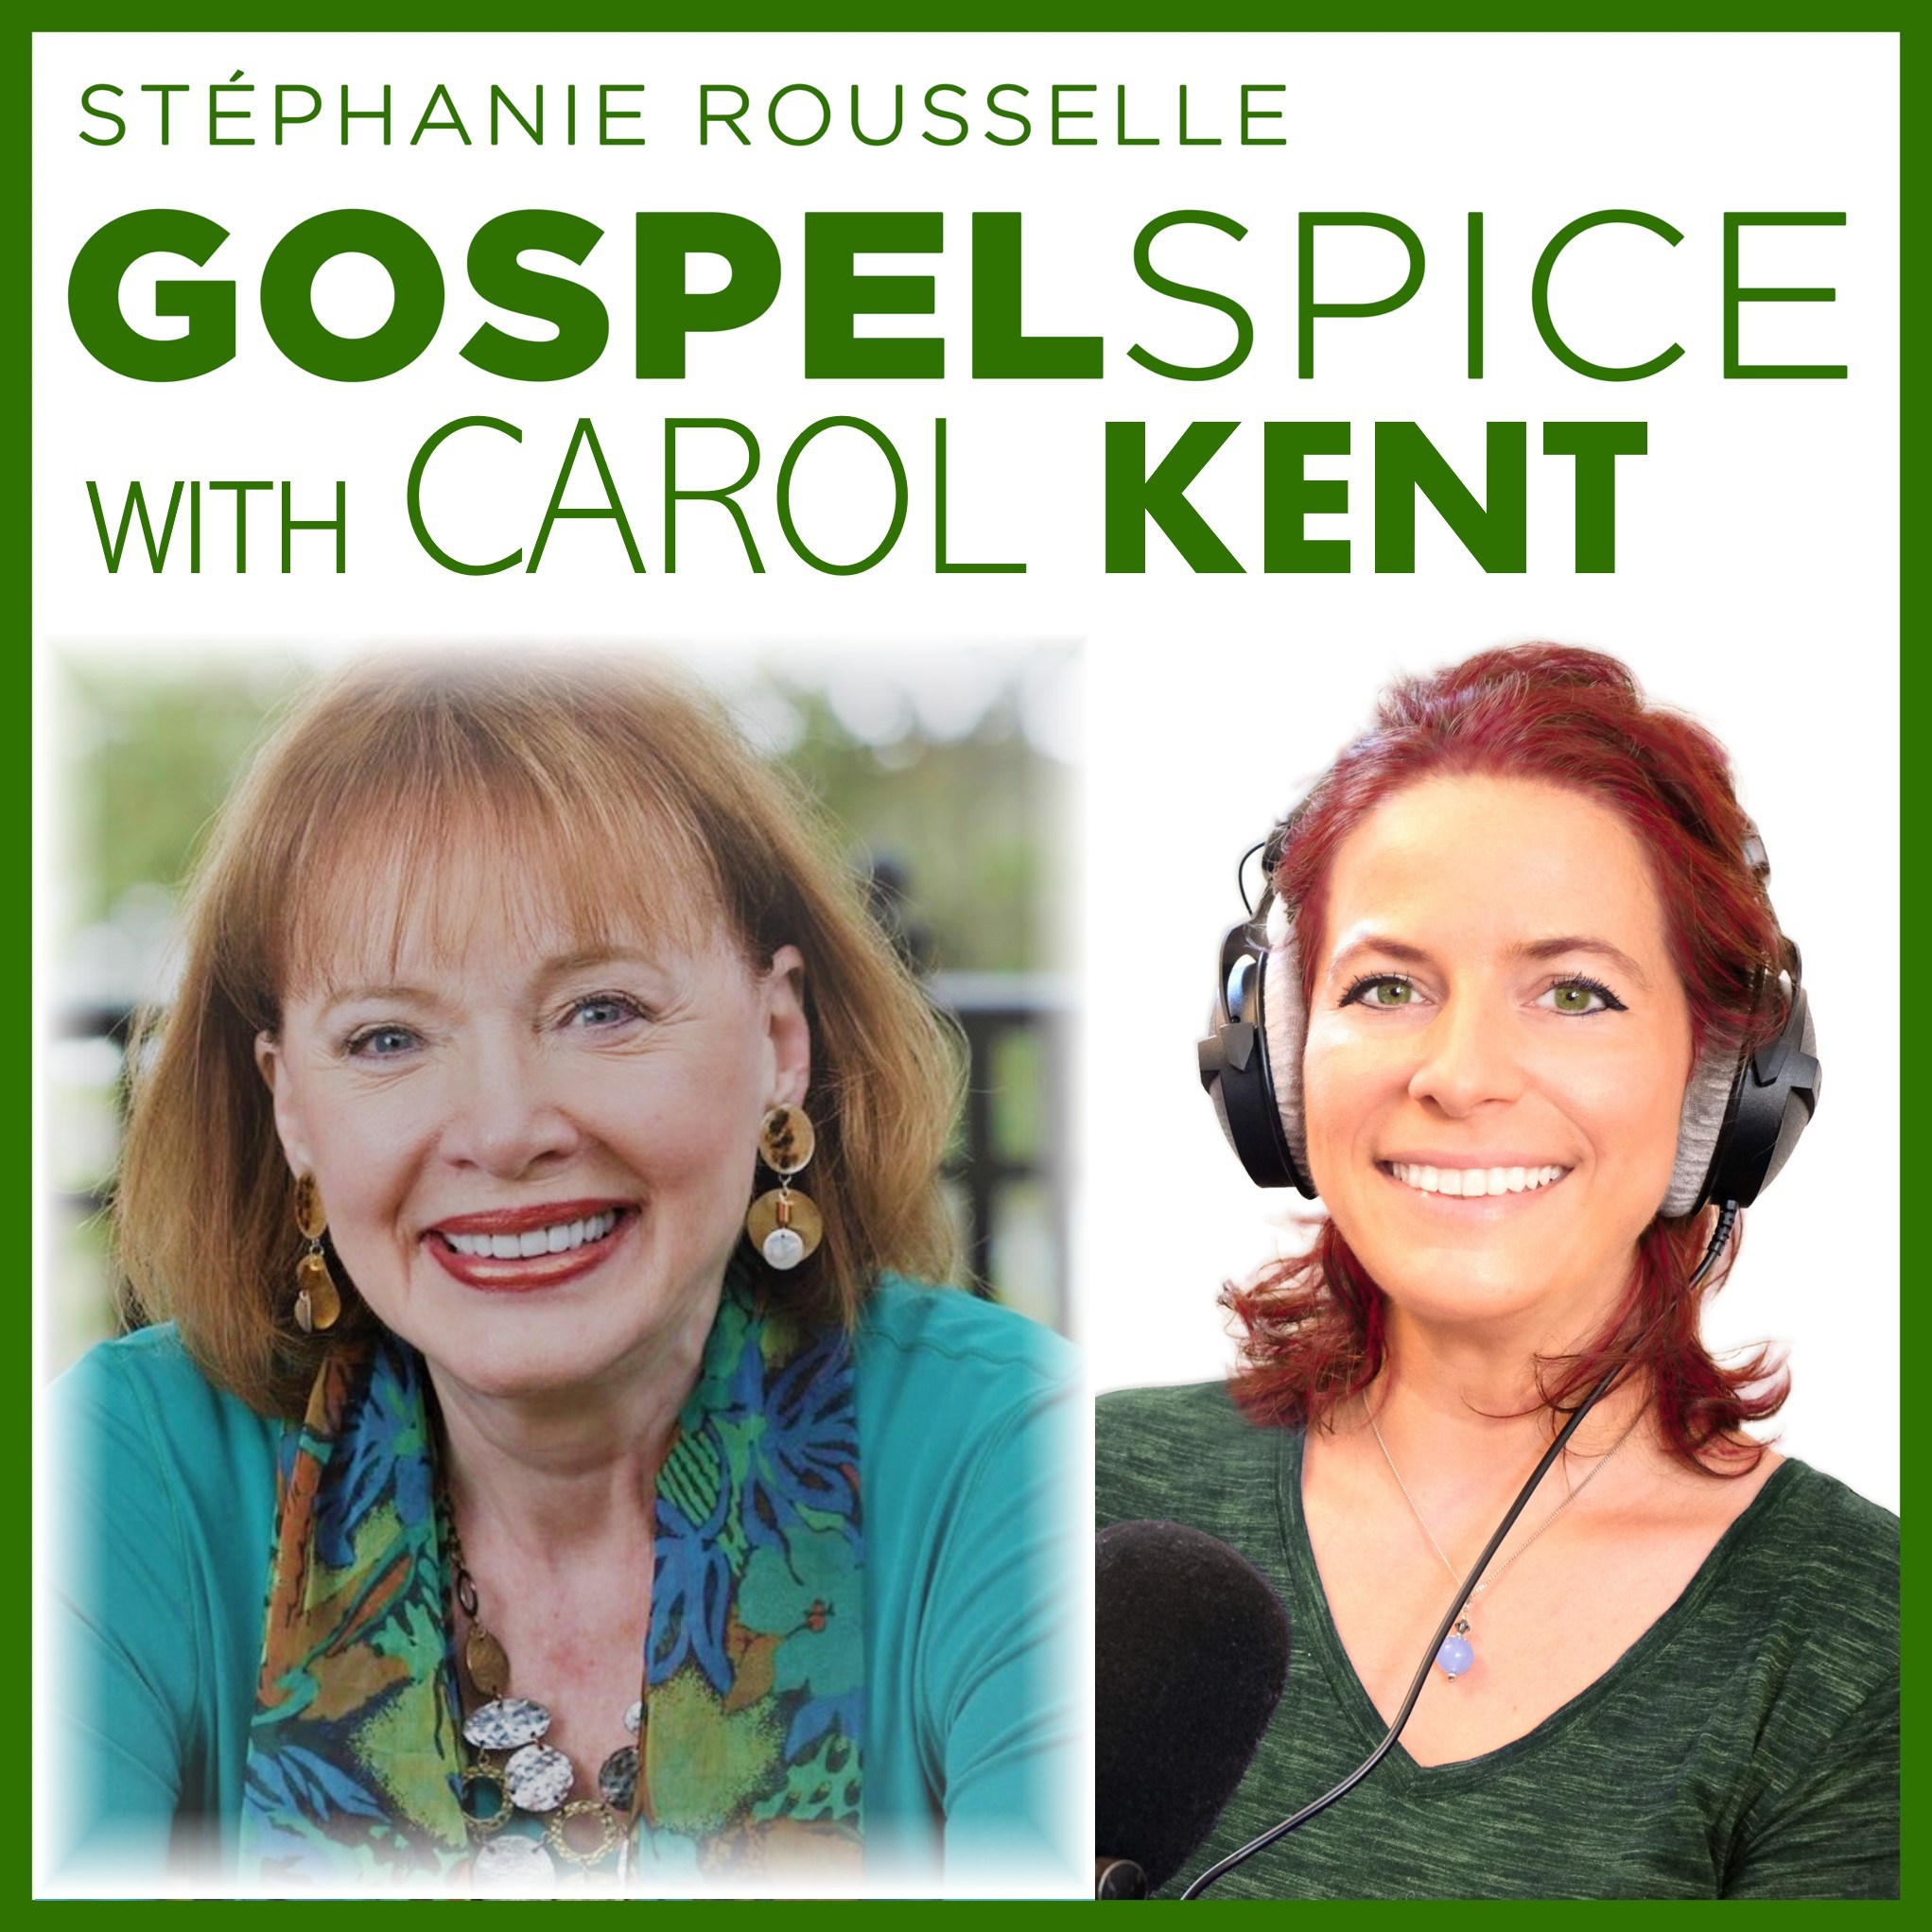 What do you do when life sends its worst? with Carol Kent